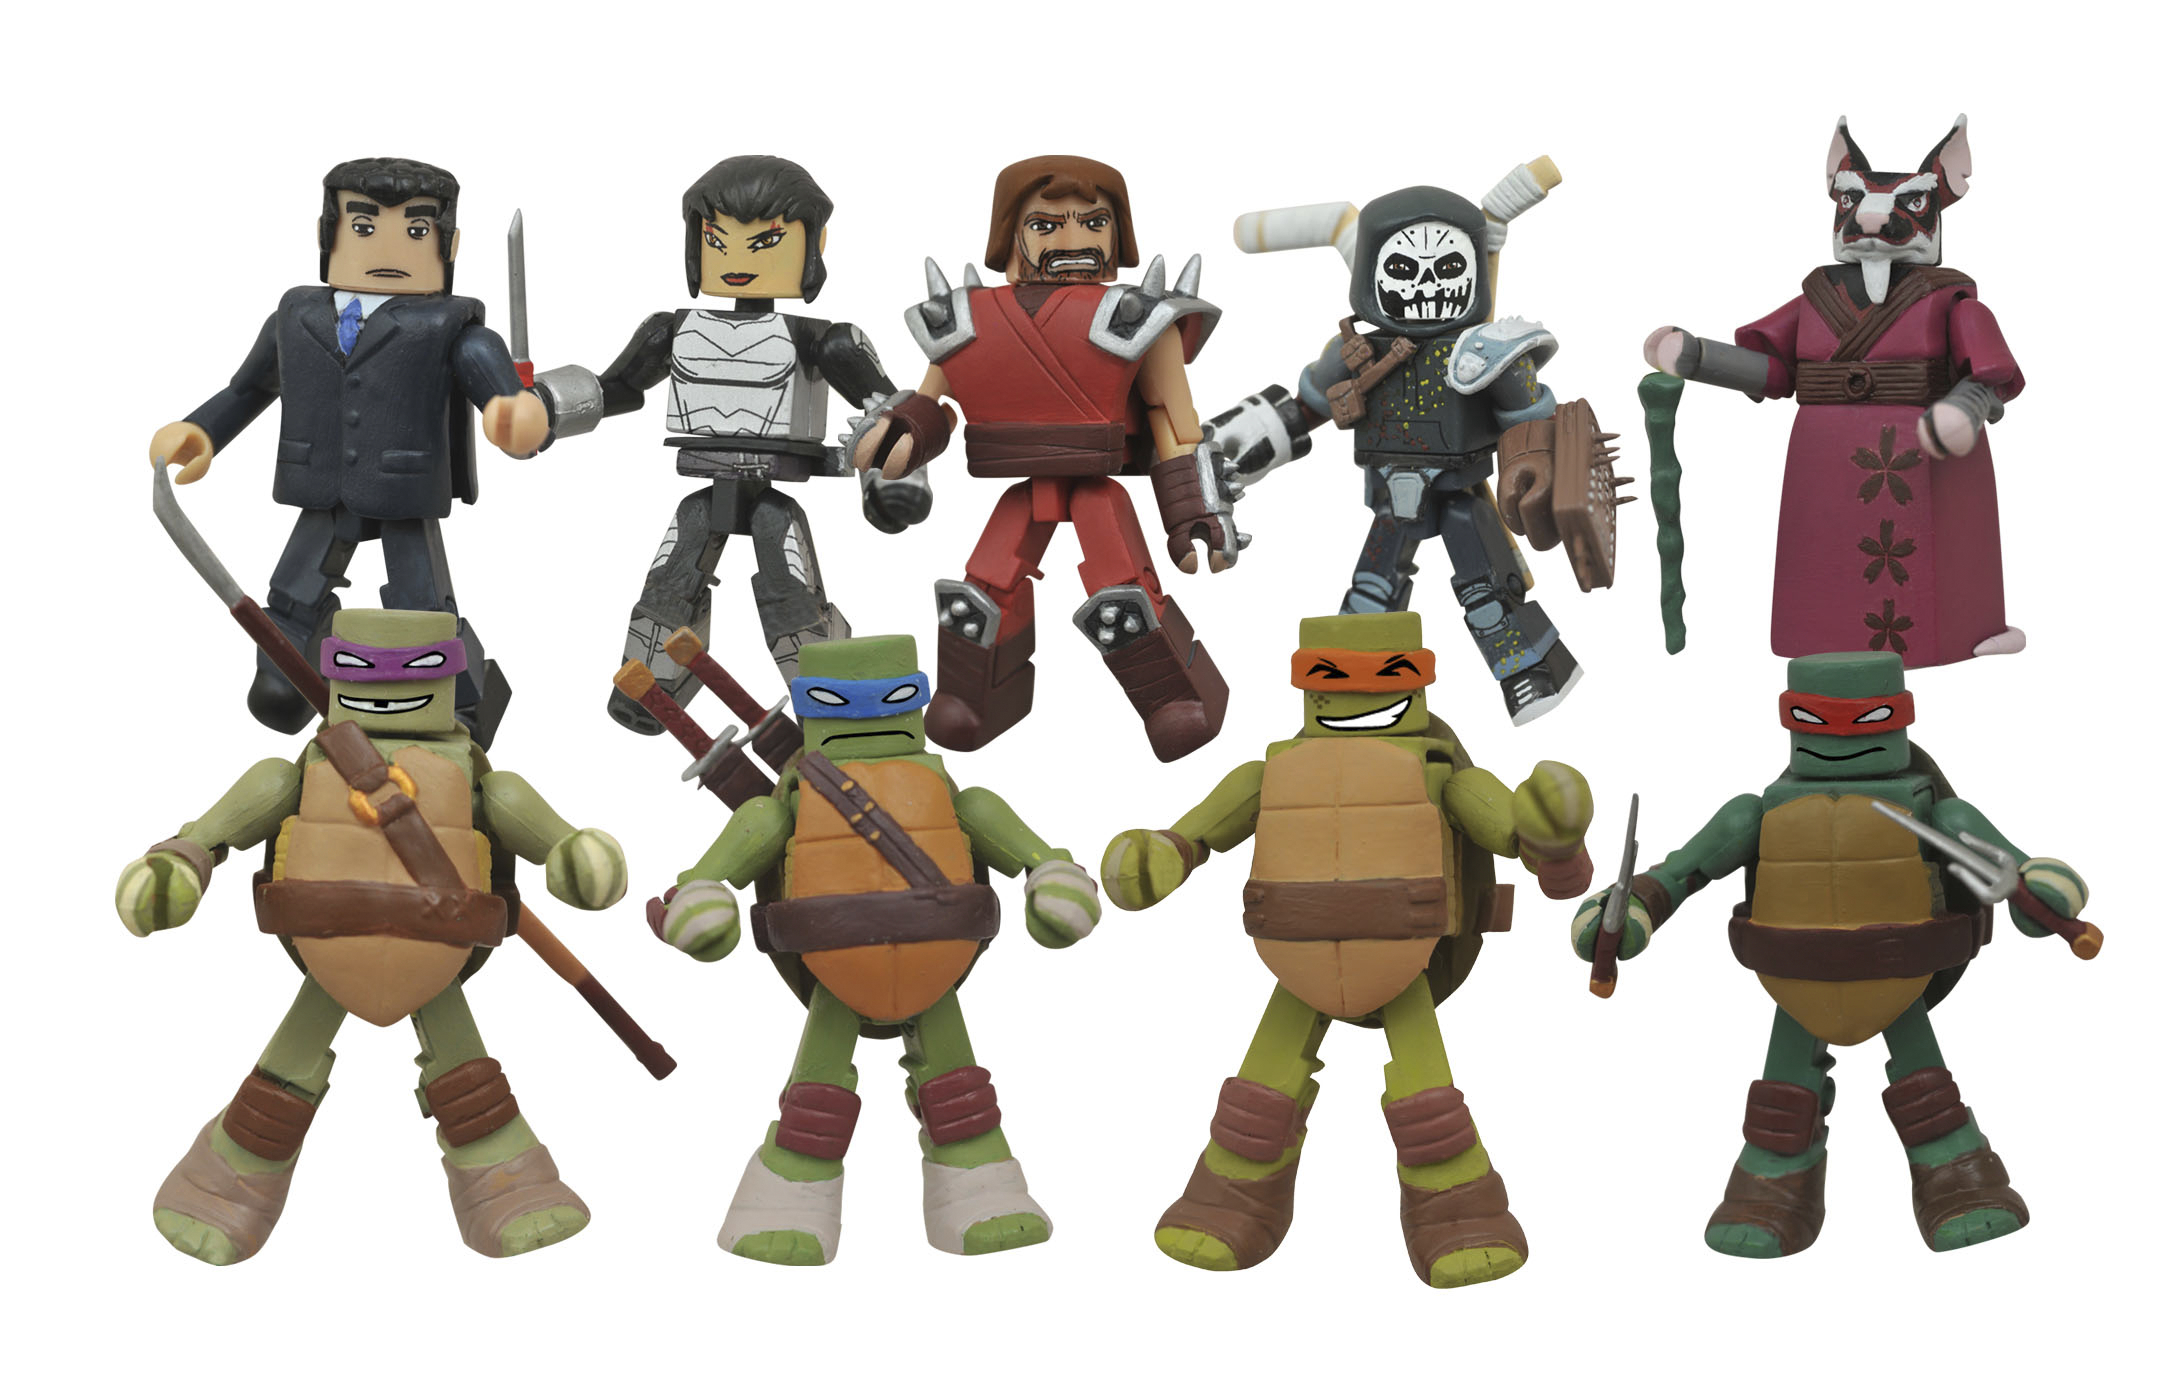 TMNT MINIMATES SER 2 FOIL BMB COUNTER DISPLAY (O/A)